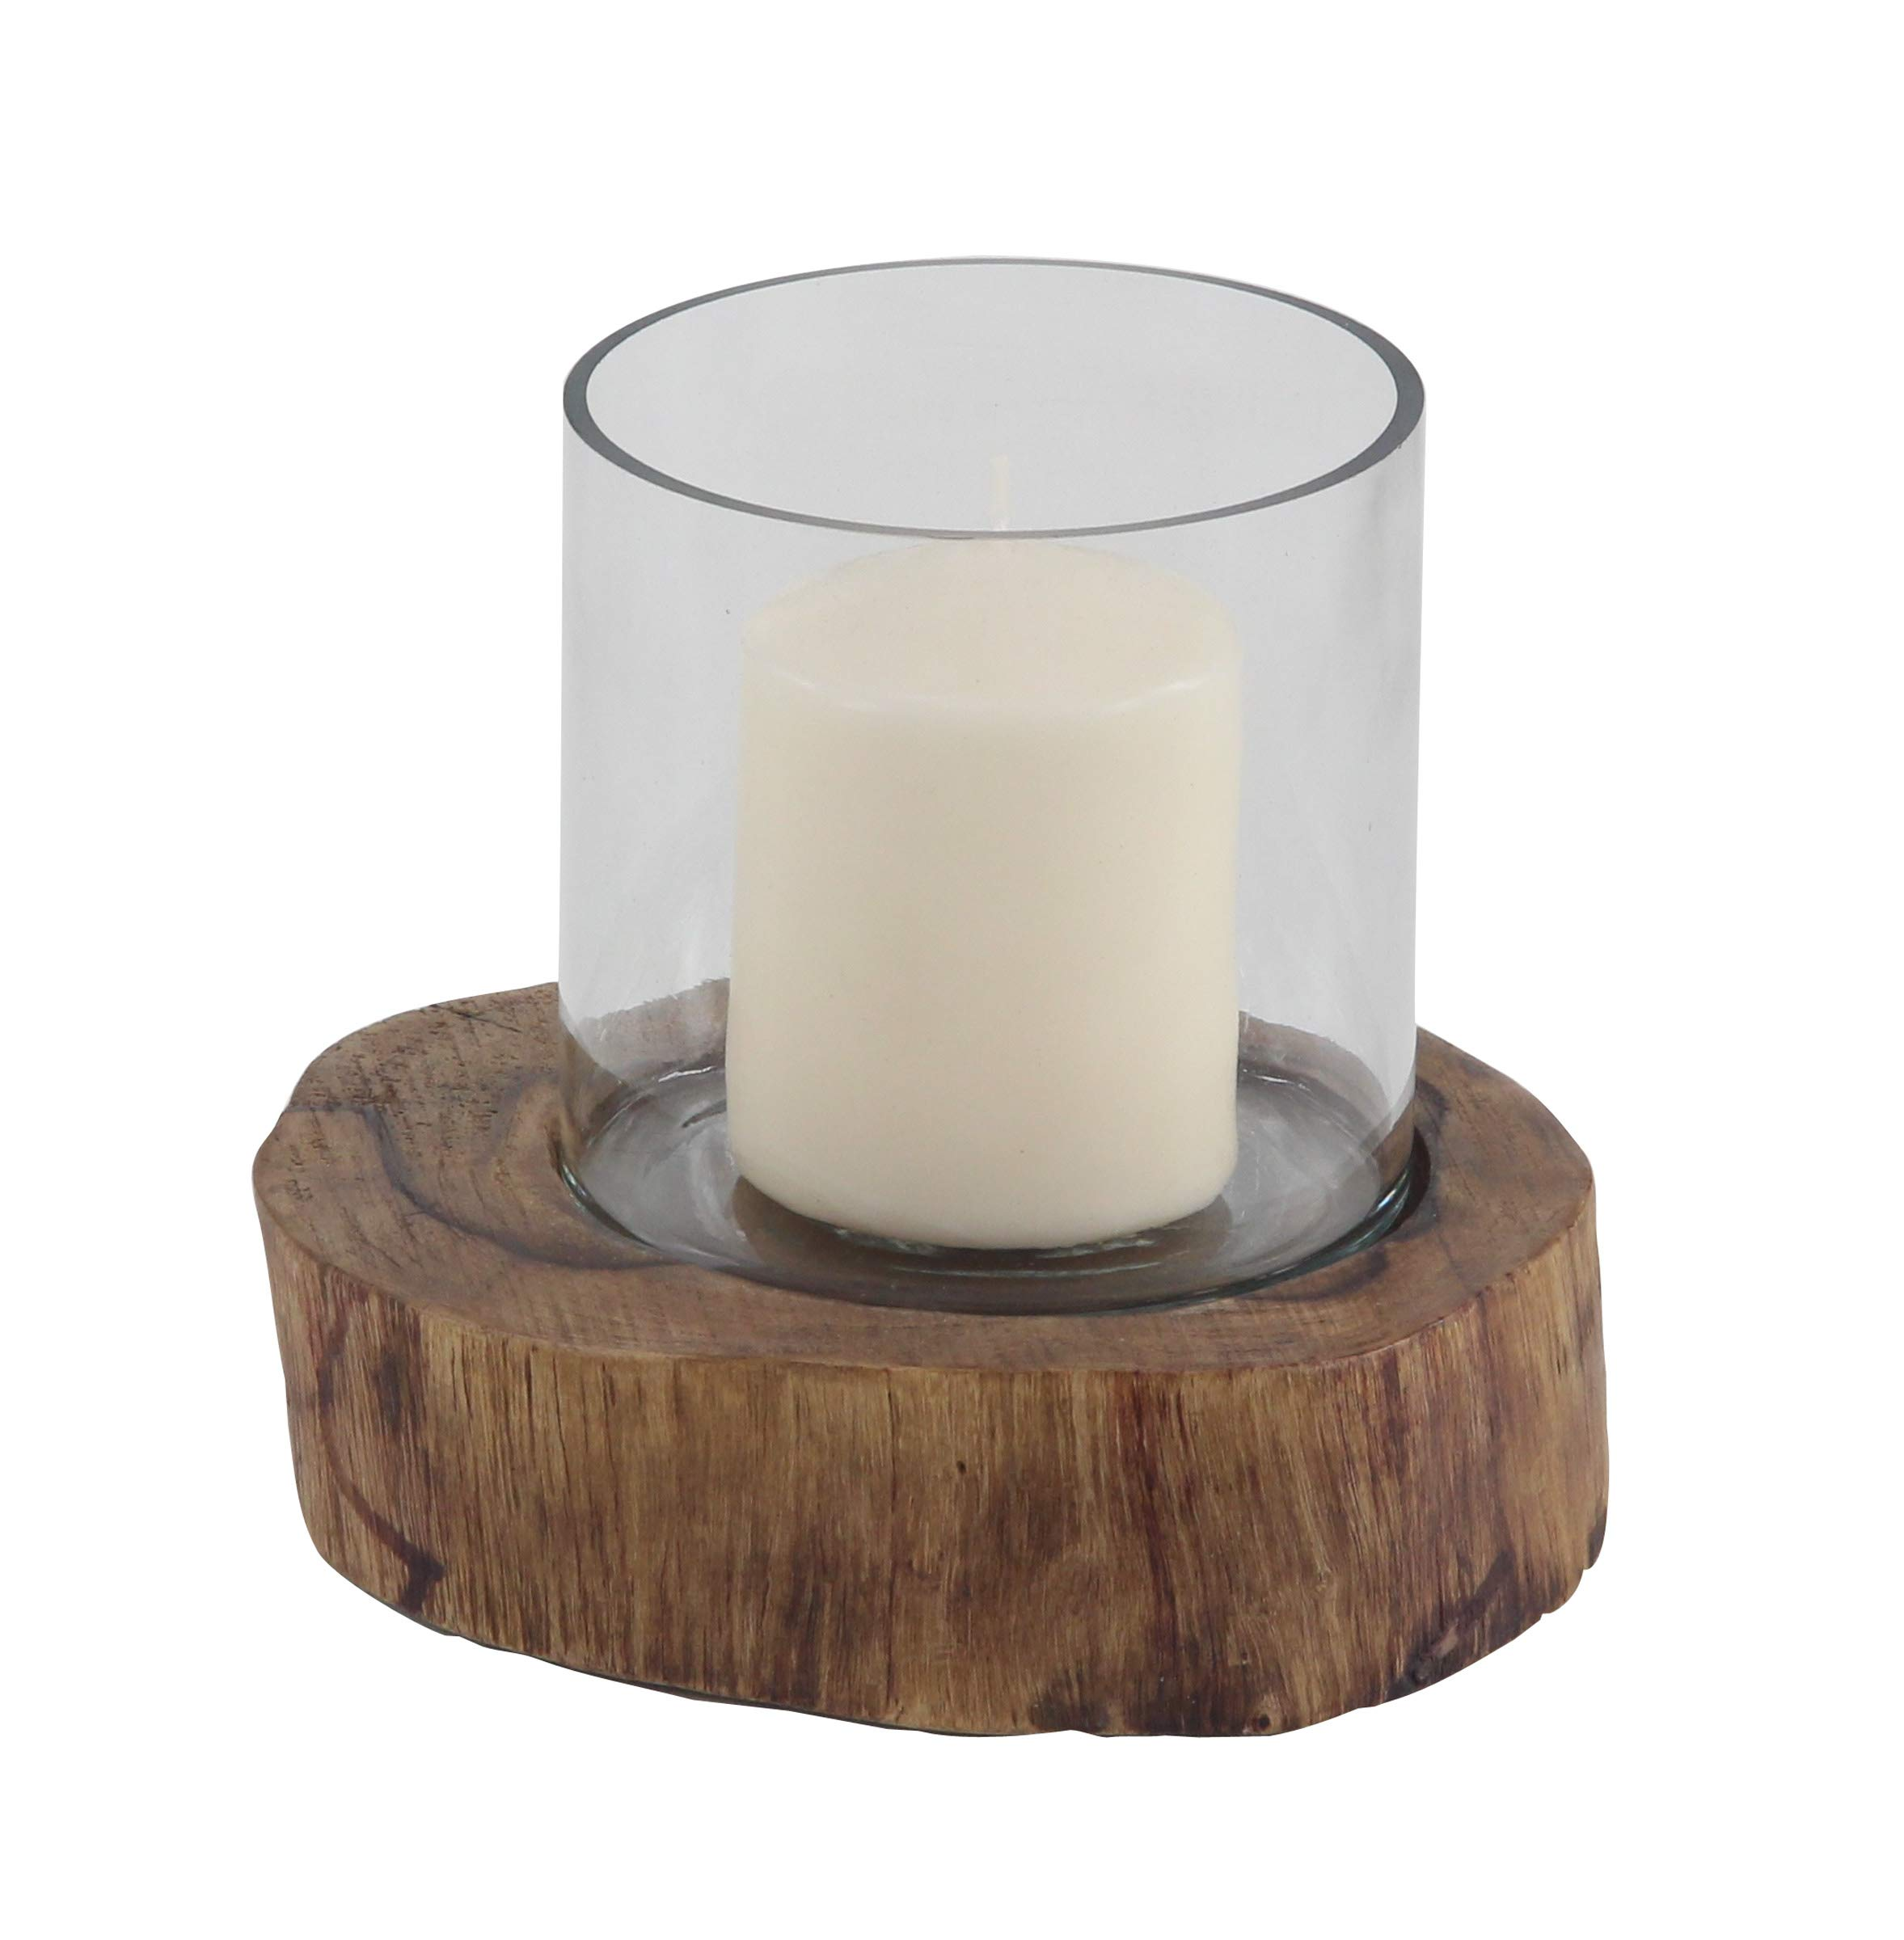 Deco 79 72943 Rustic Glass Candle Holder with Wooden Base, 6'' W x 6'' H, Brown, Clear